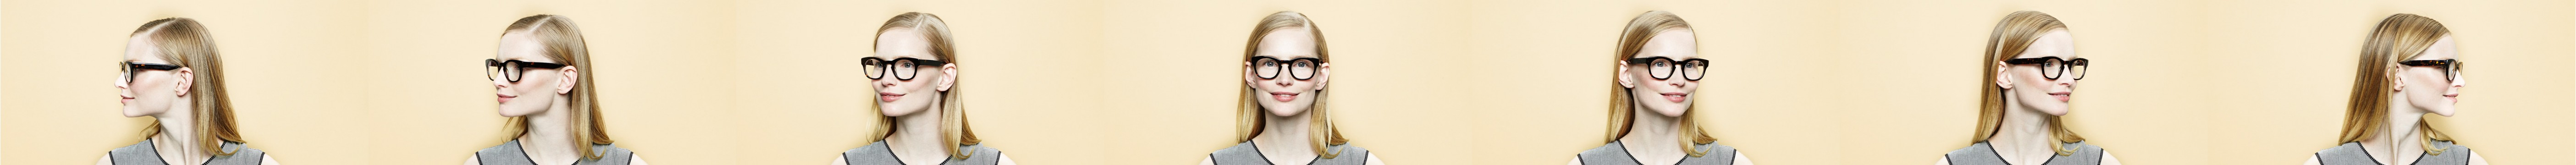 Kimball - Eyeglasses - Women | Warby Parker